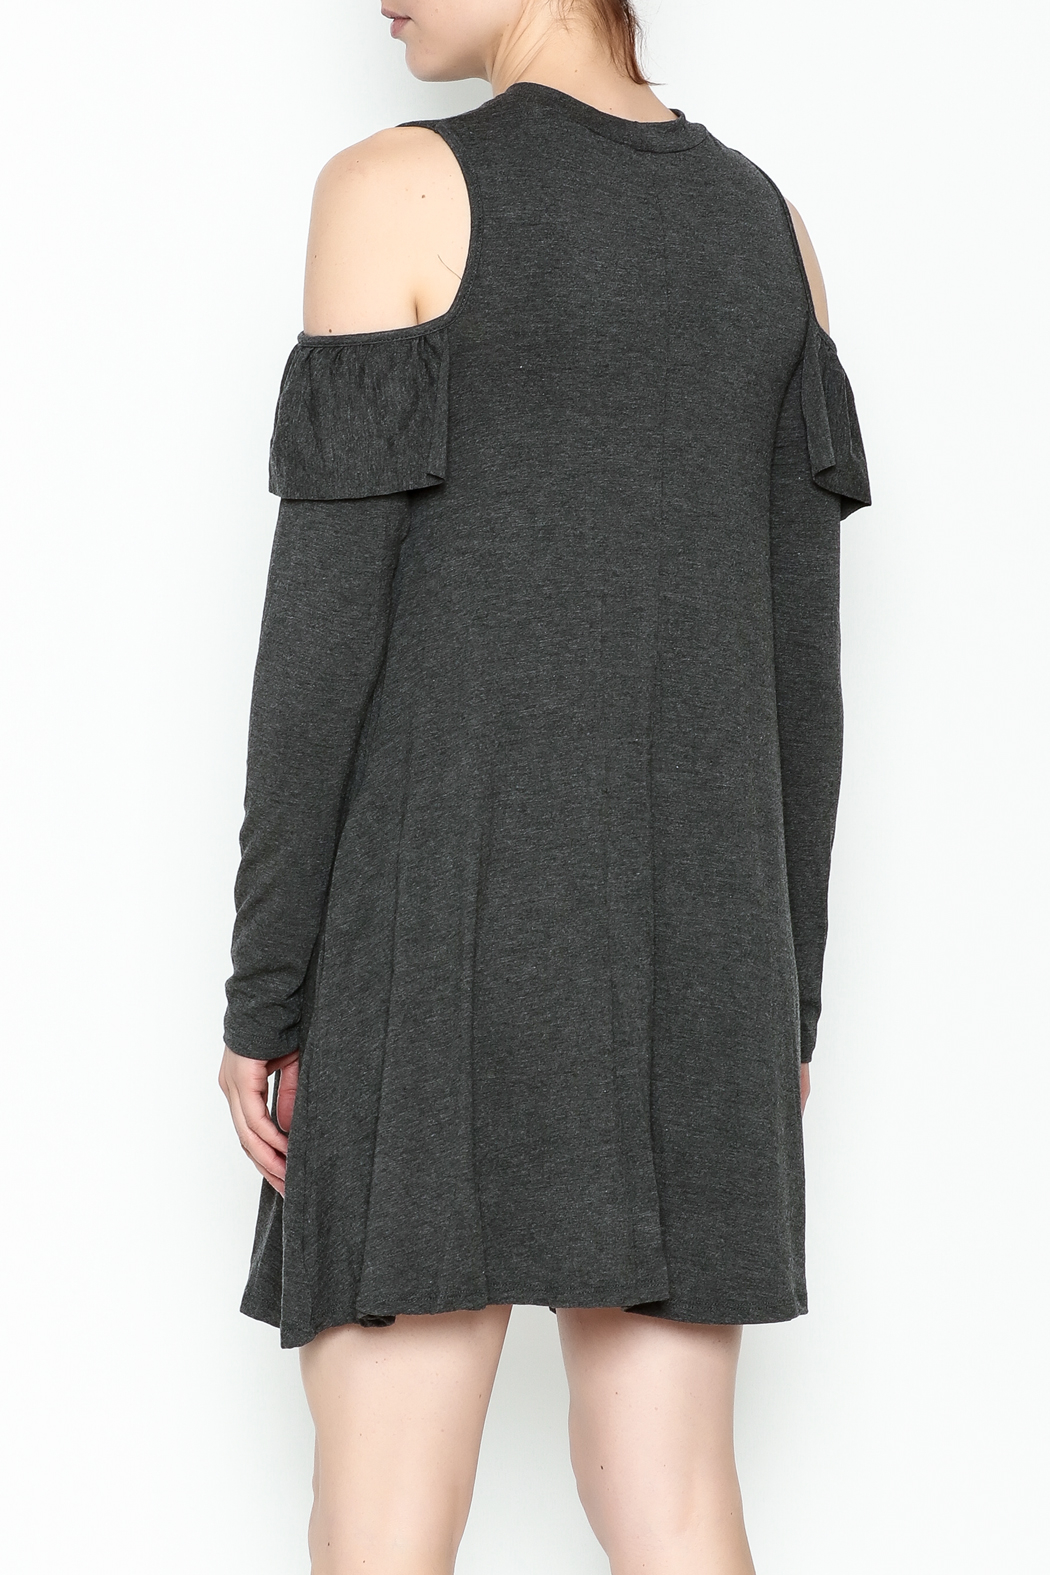 Elan Ruffle Swing Dress - Back Cropped Image